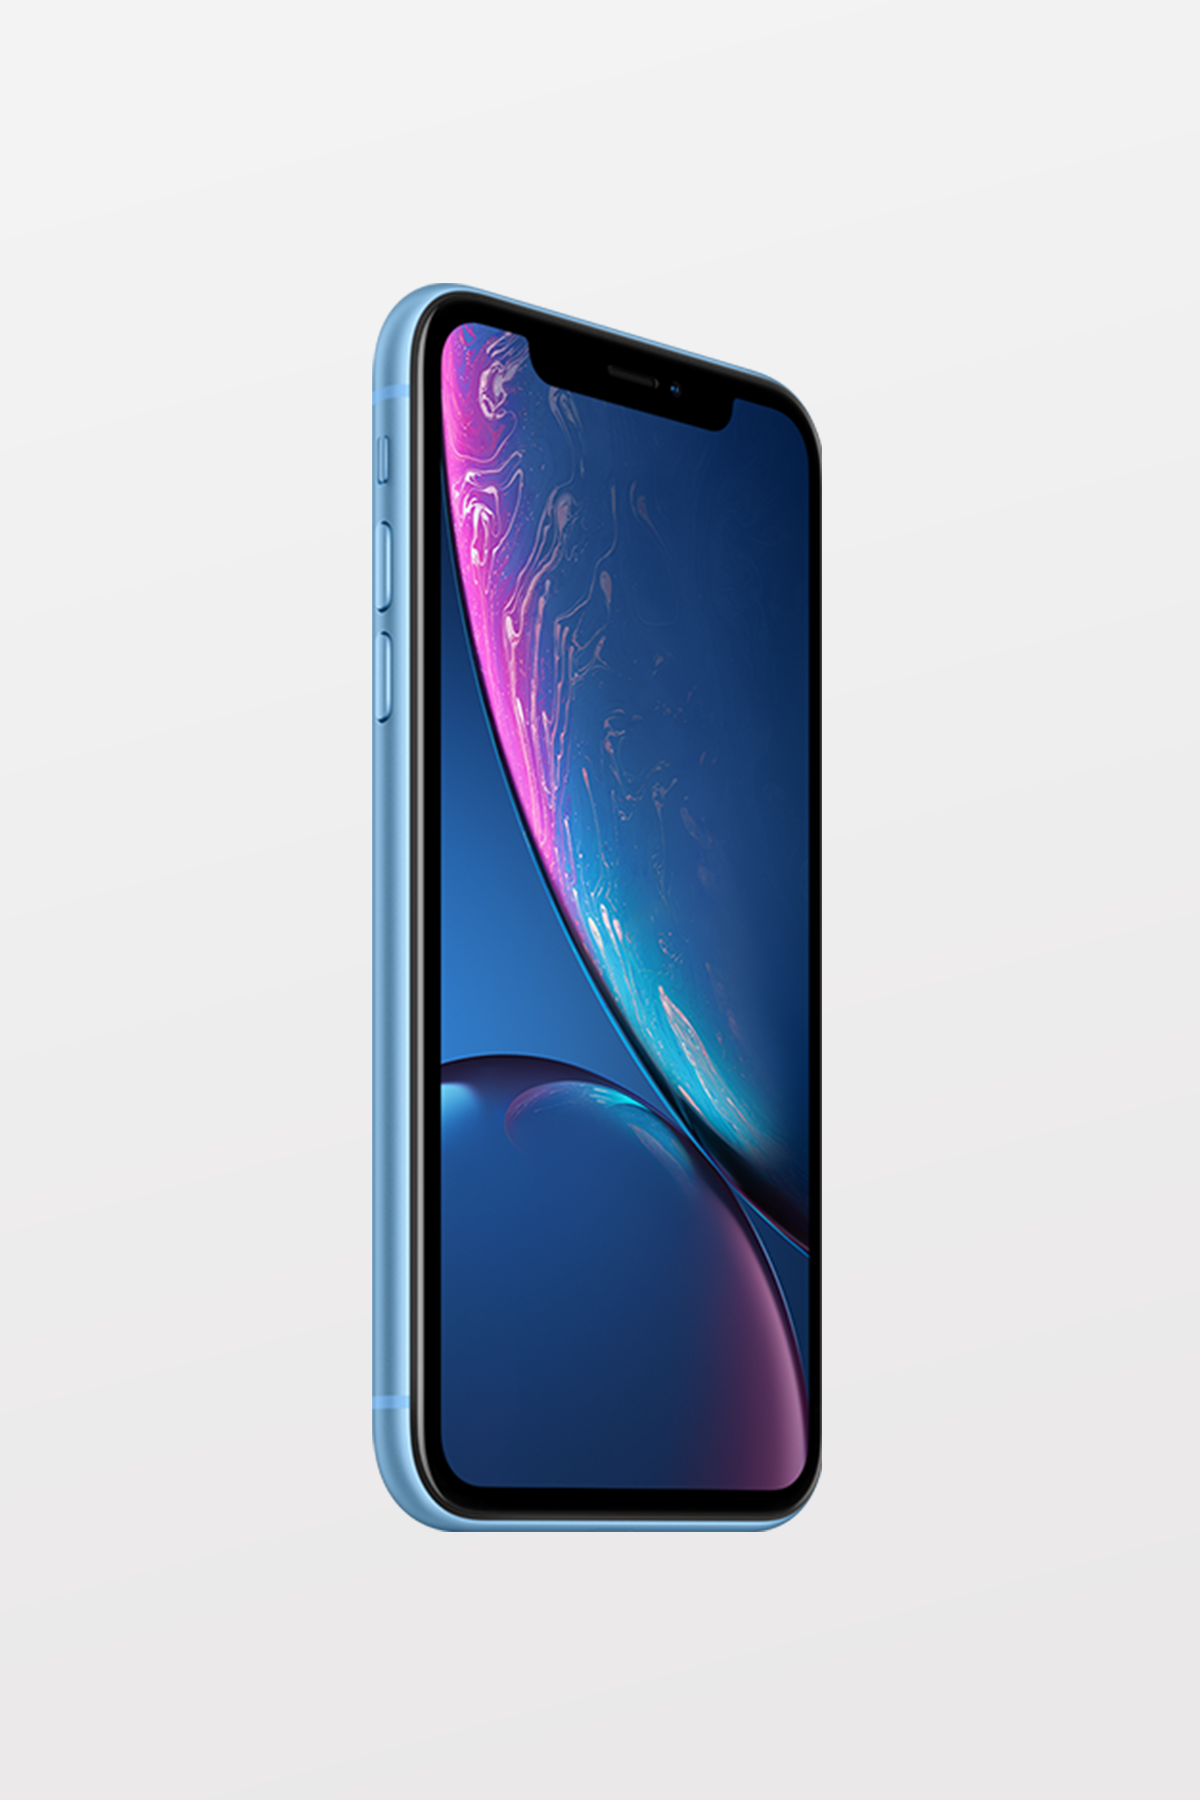 Apple iPhone Xr 256GB - Blue - Refurbished